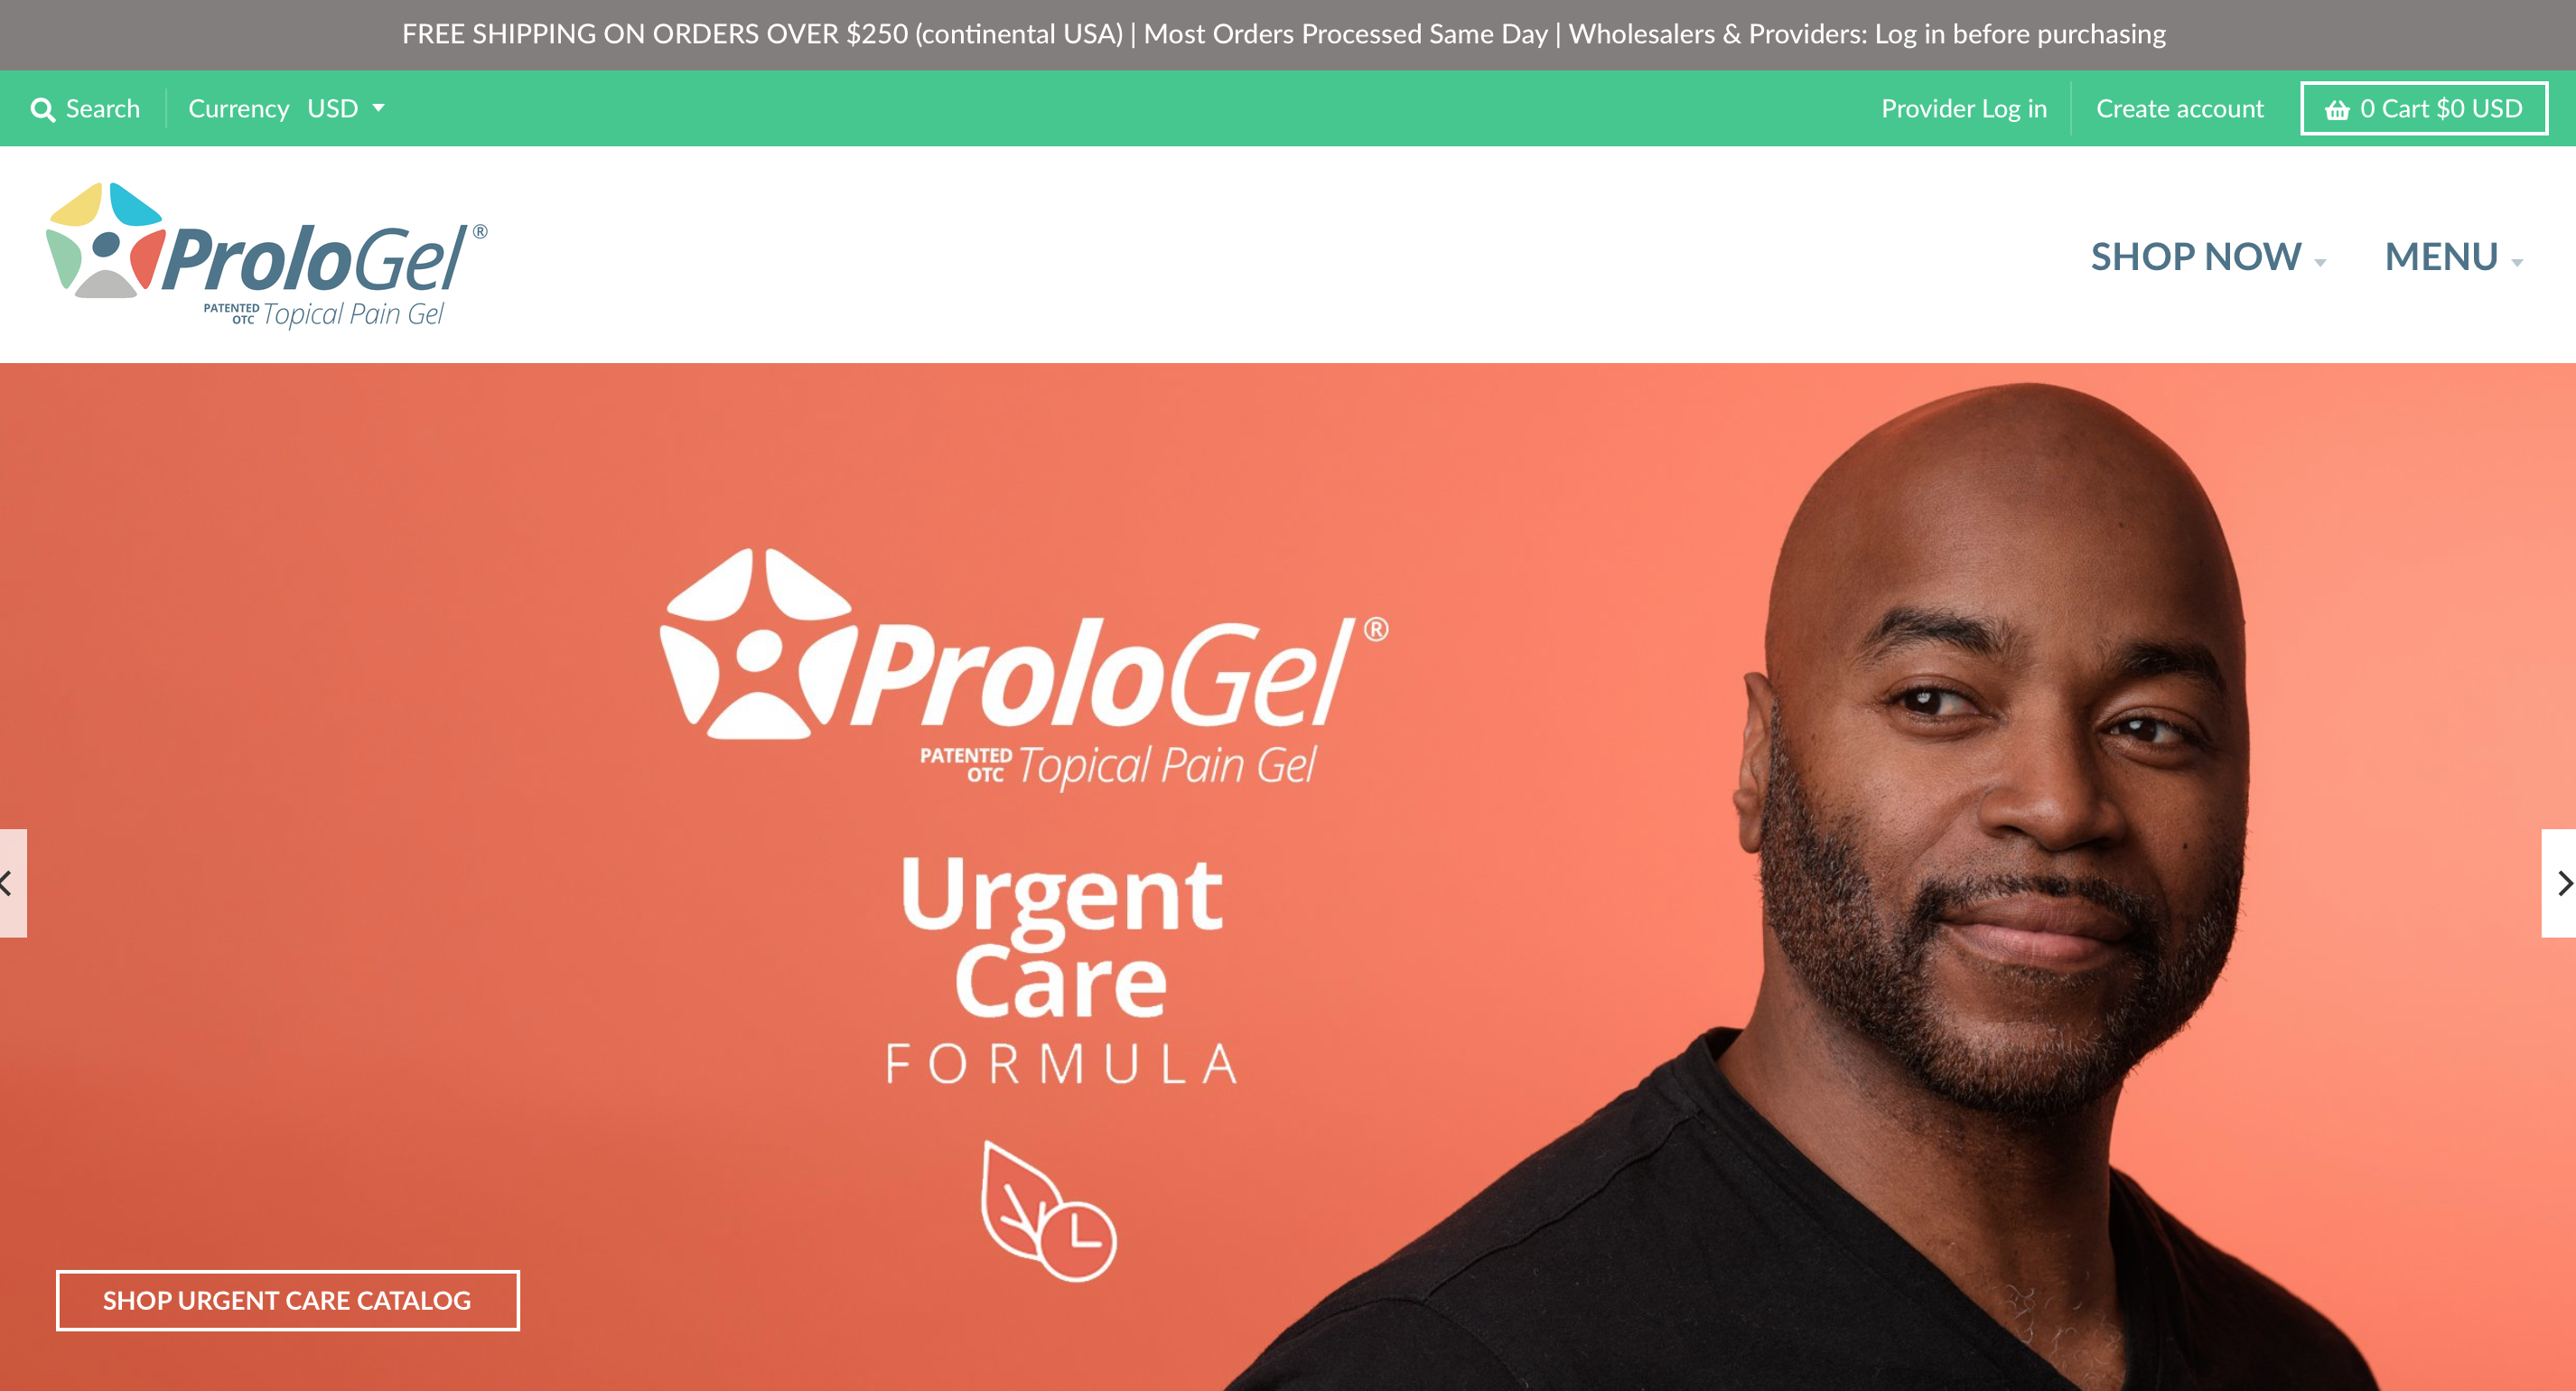 Prologel